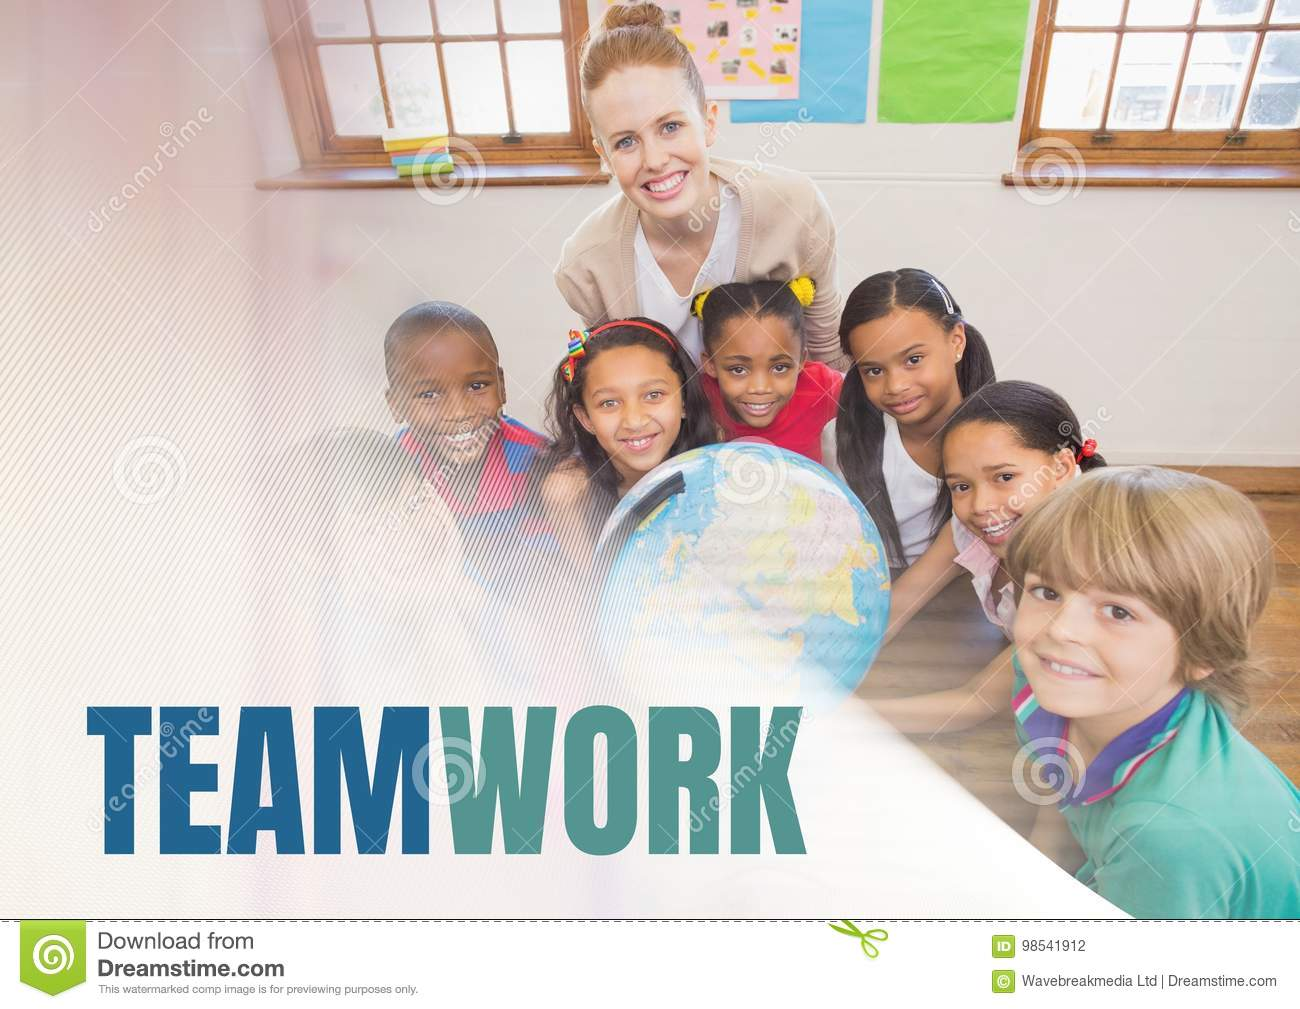 teamwork school